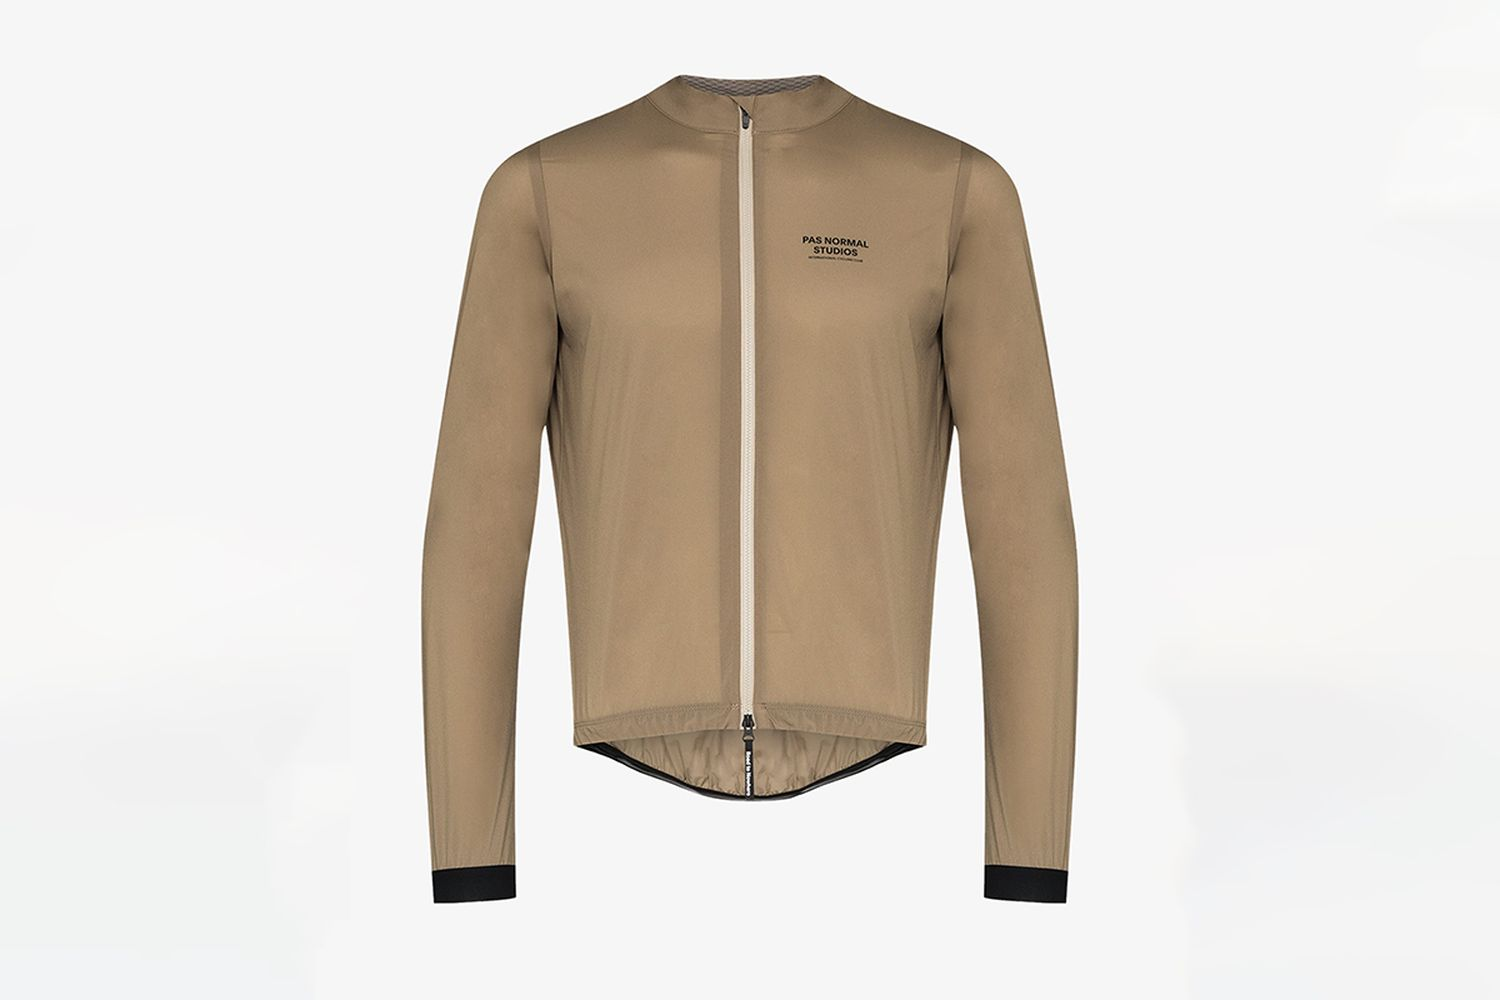 Stowaway Performance Jacket